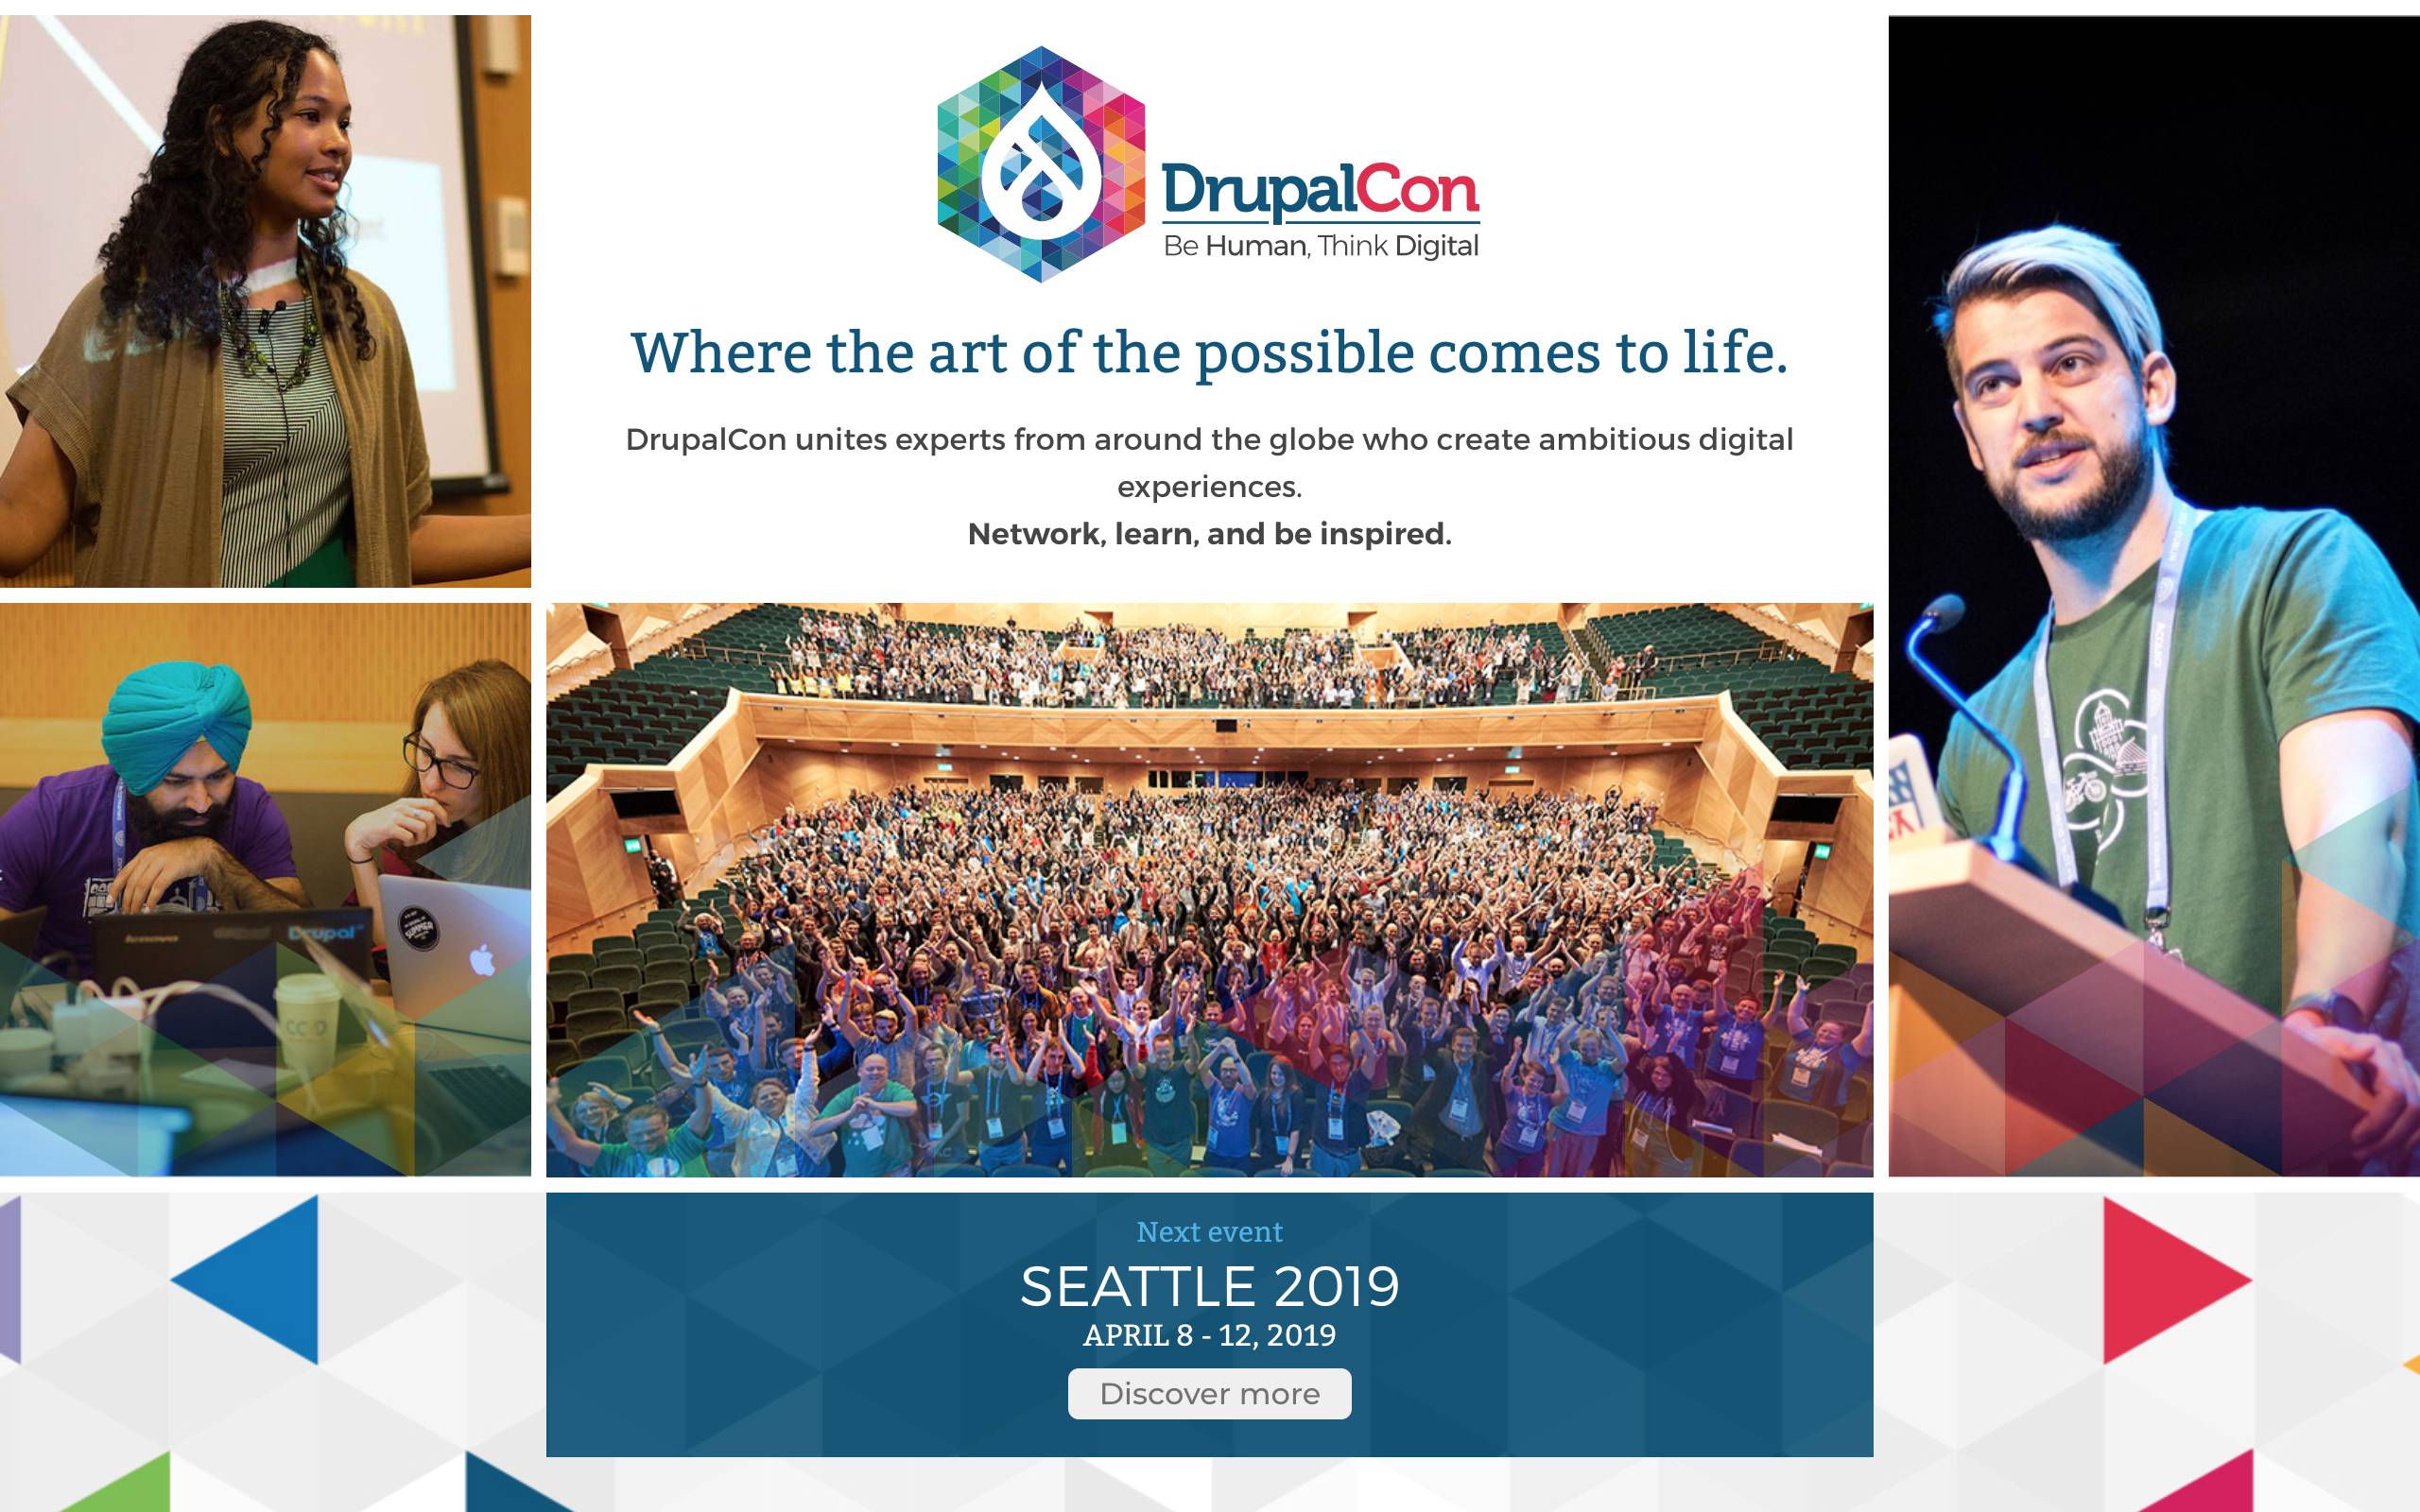 DrupalCon homepage